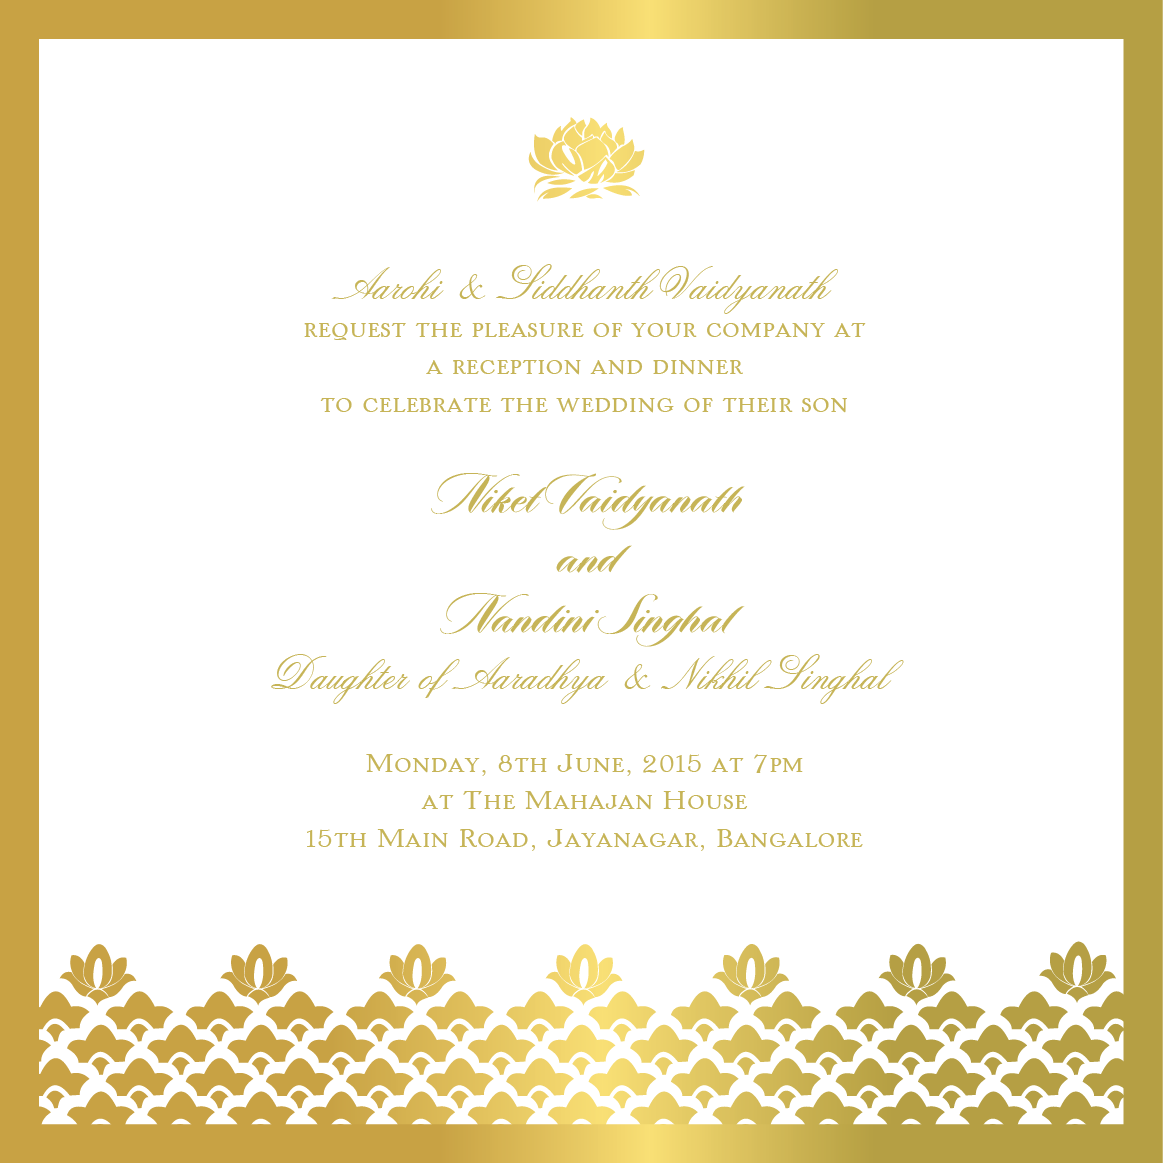 Rezilta zimaz pour INDIAN WEDDING RECEPTION CARD | RECEPTION ...